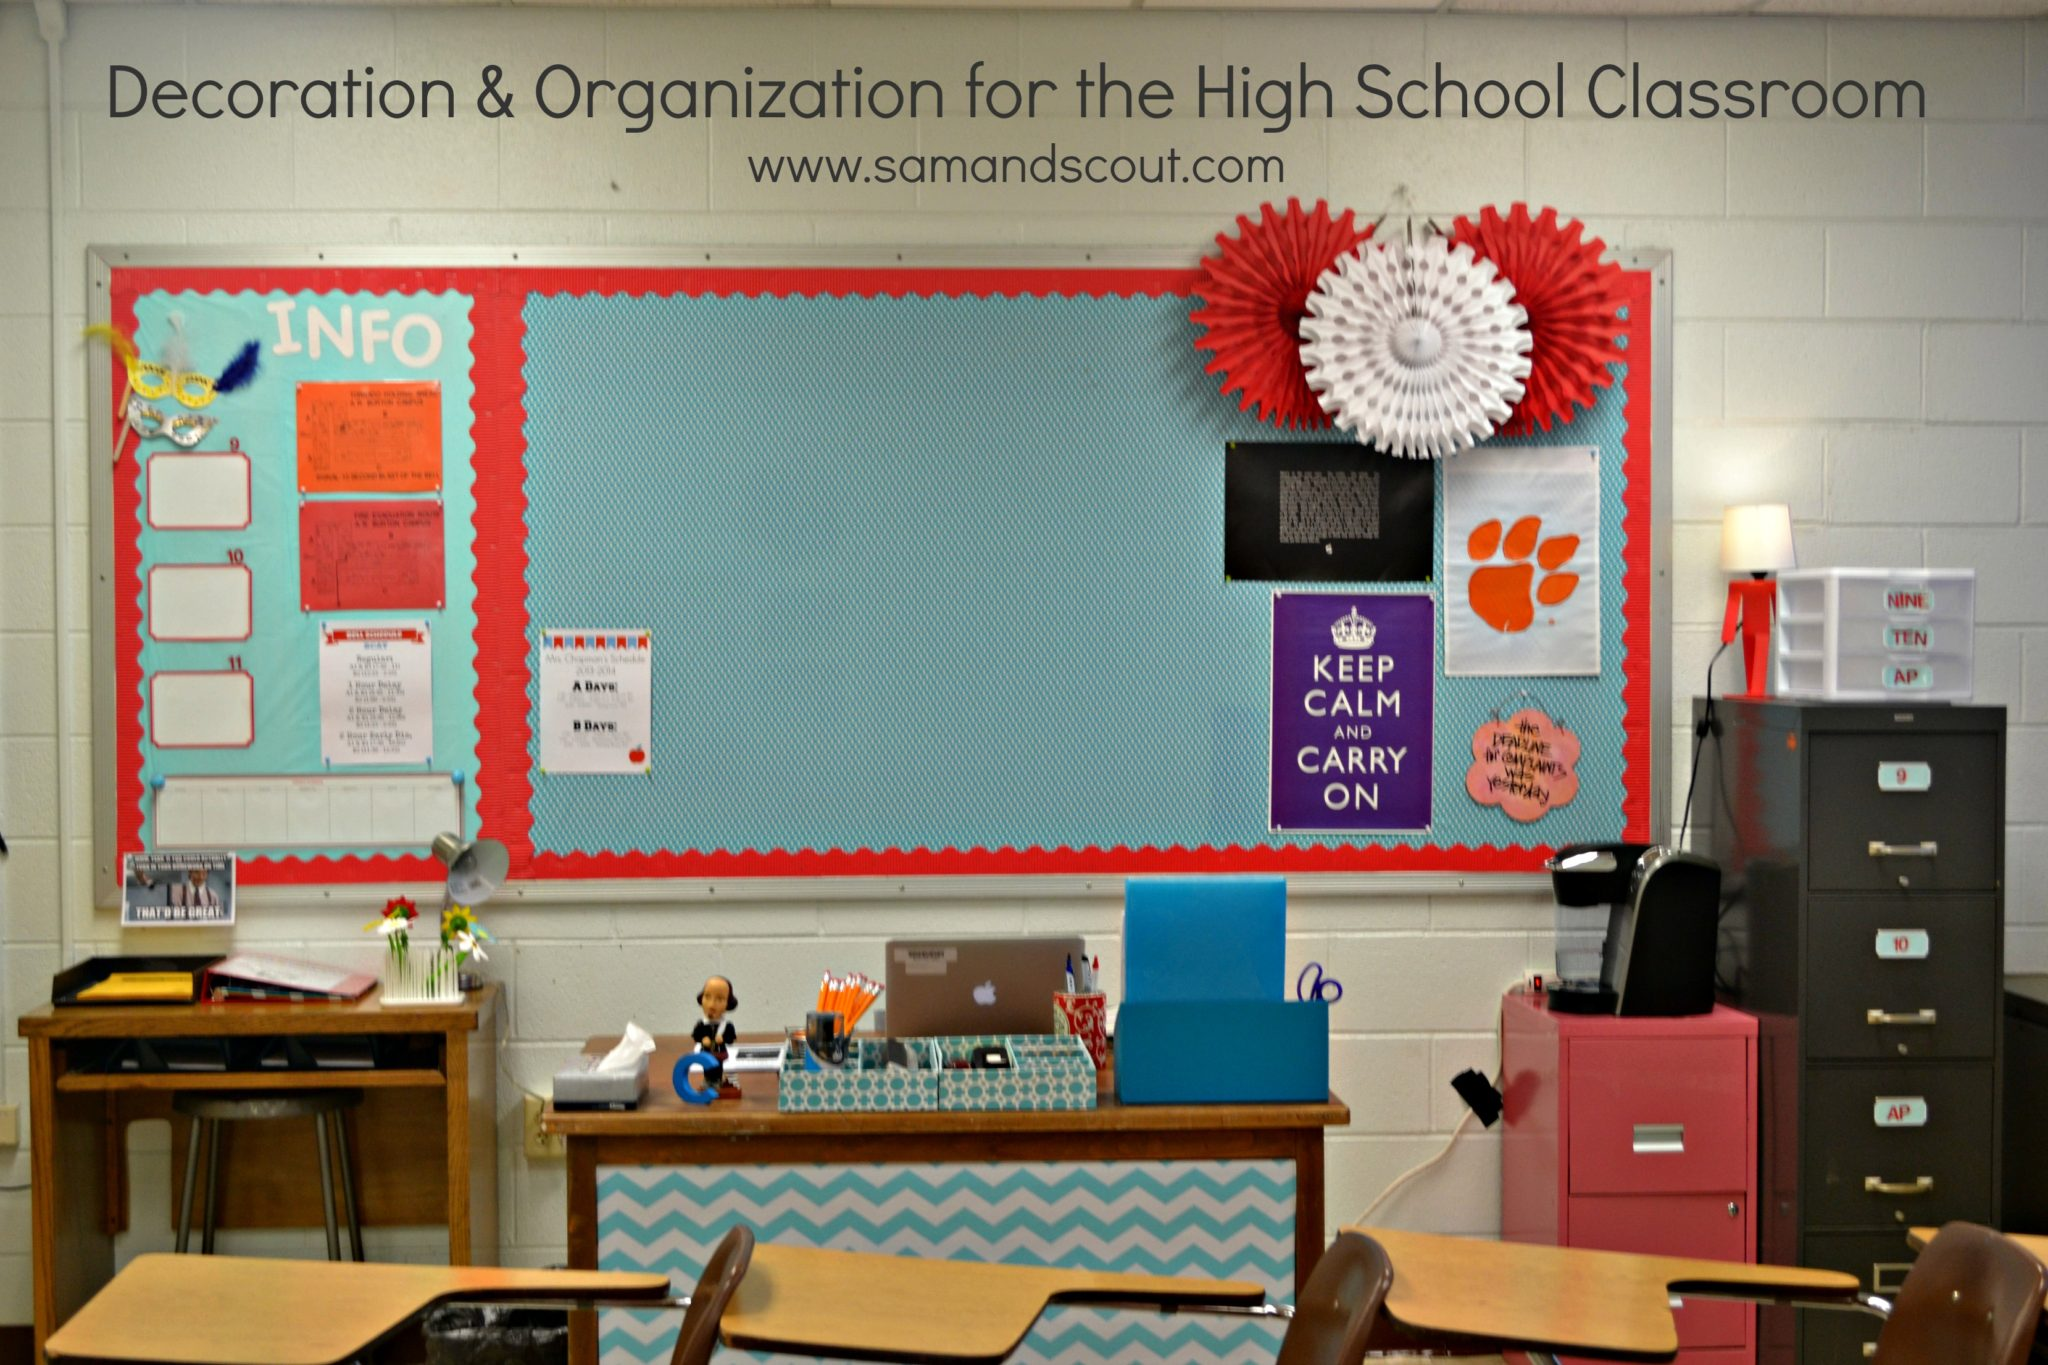 Classroom Design High School ~ Decoration organization for the high school classroom